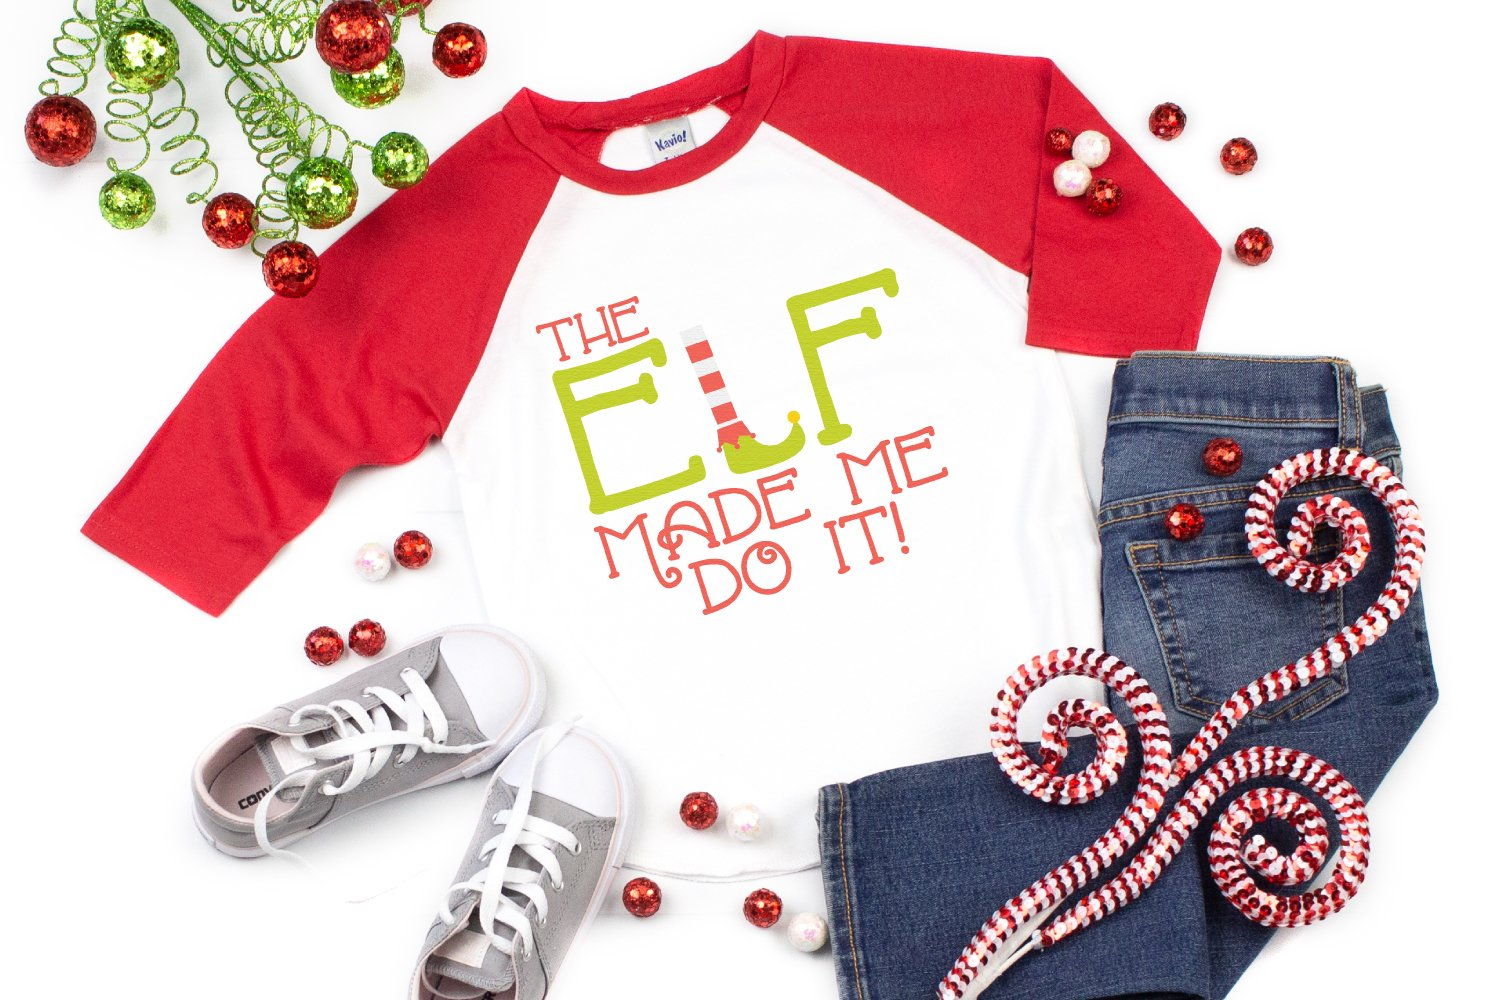 The Elf Made Me Do It SVG on a red and white raglan shirt